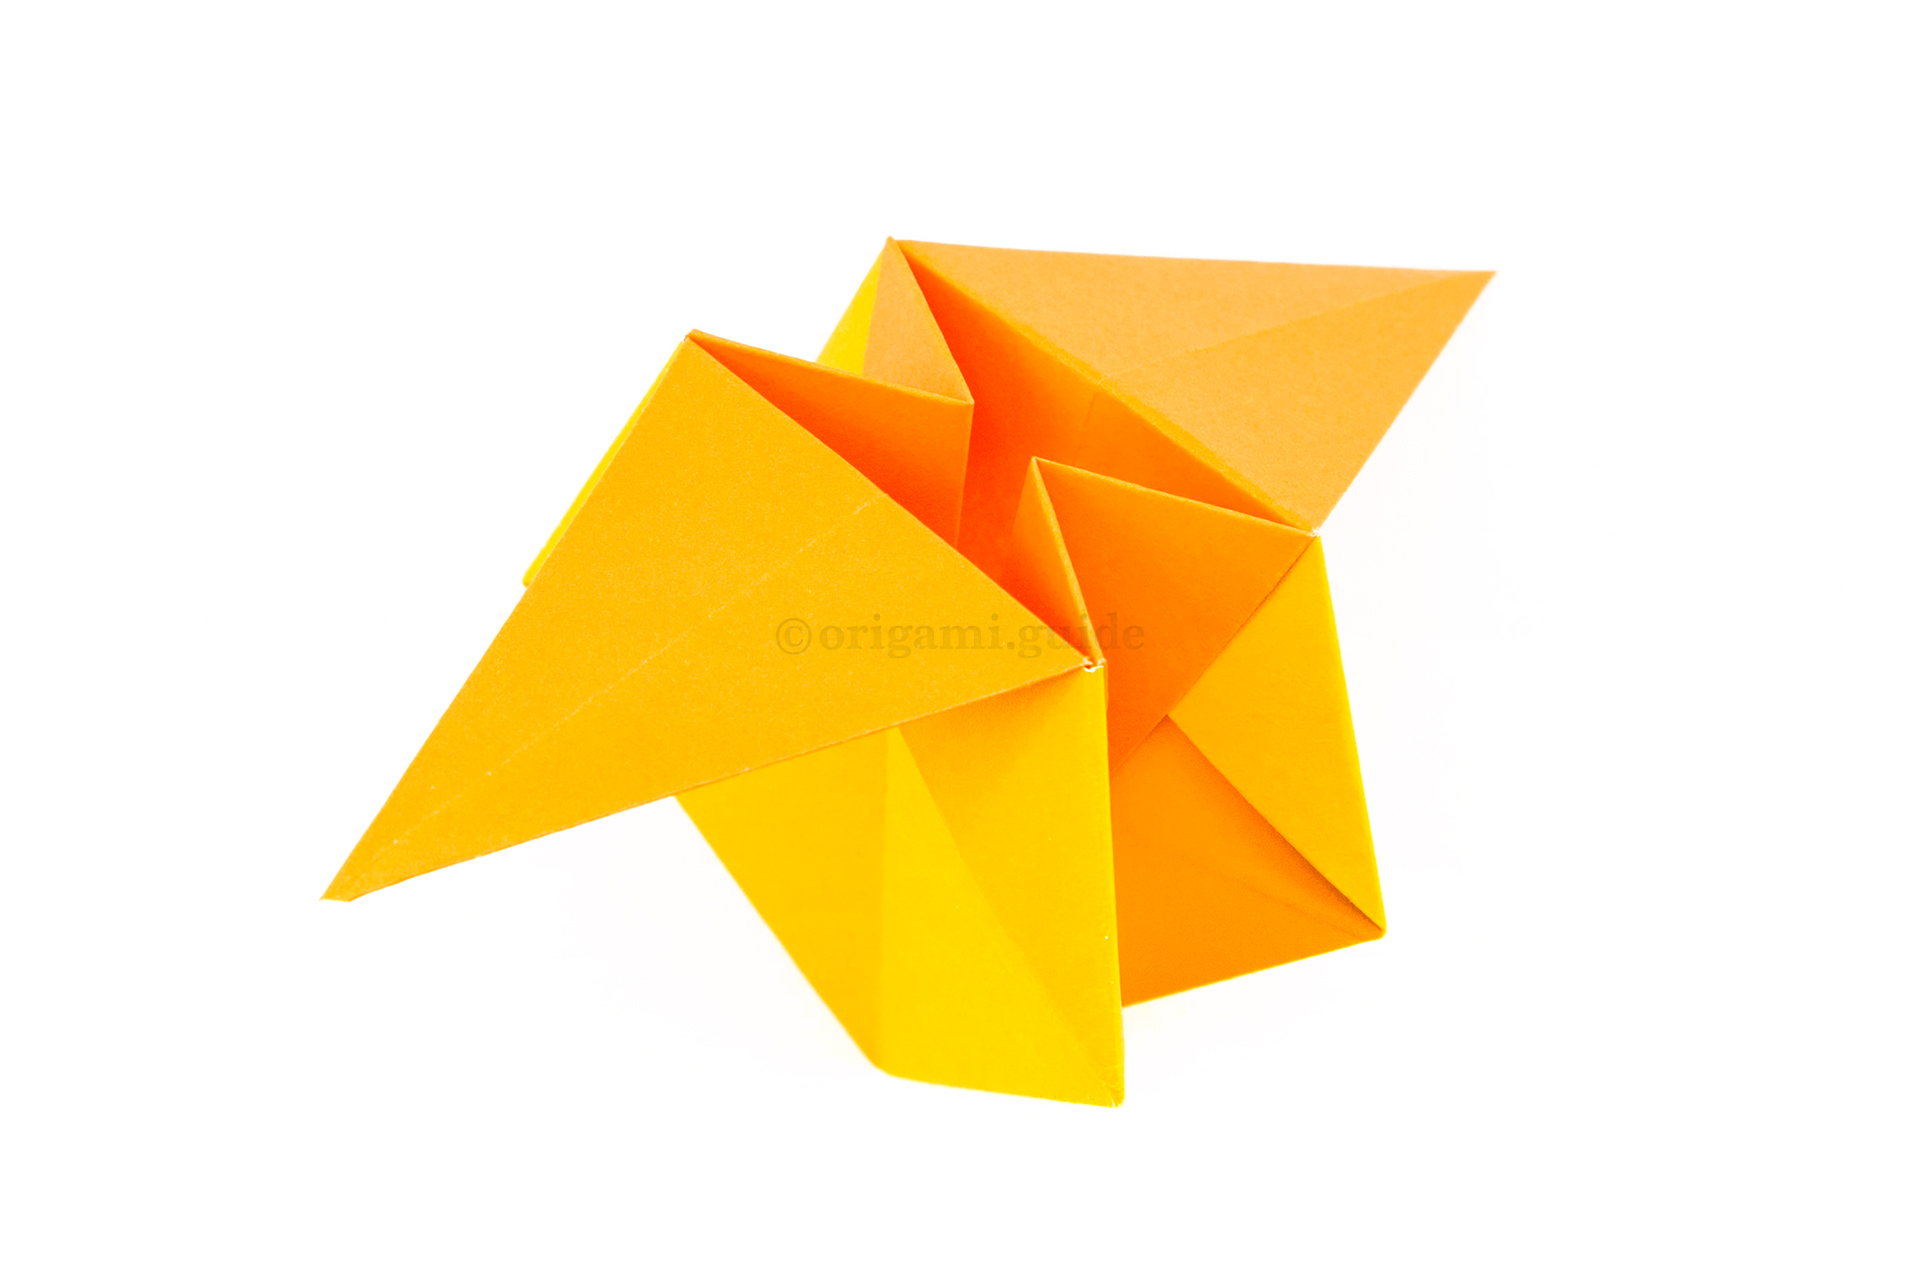 How To Make An Origami Star Box Origami Guide Part 4